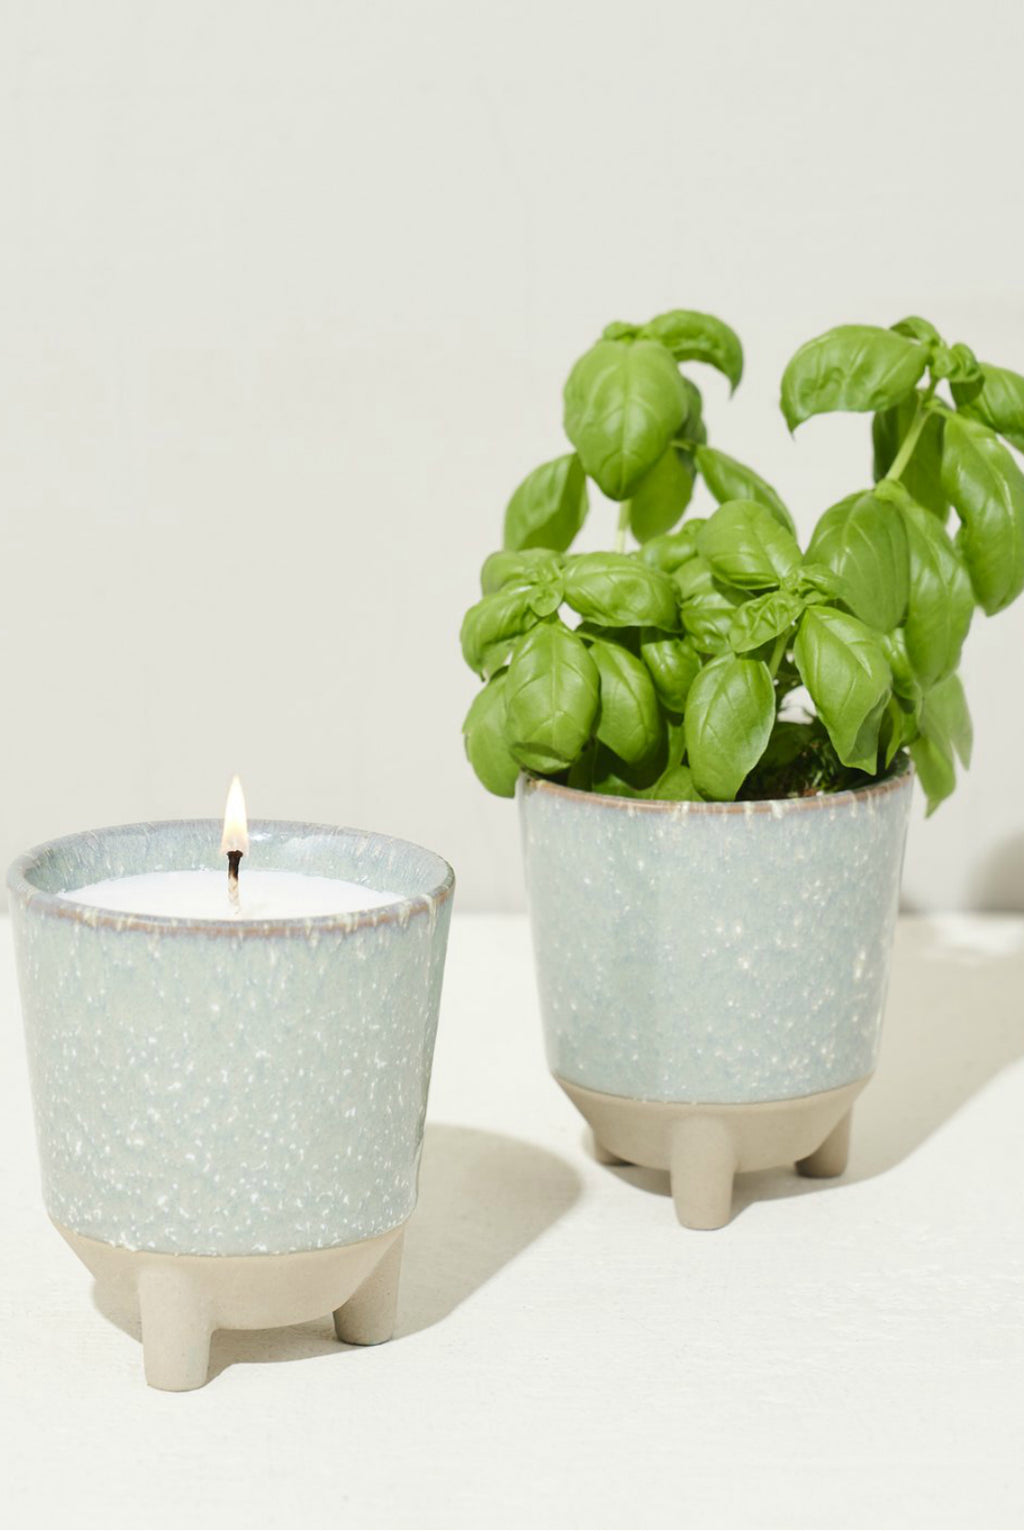 Modern Sprout Glow & Grow Kit - Basil Herb Garden